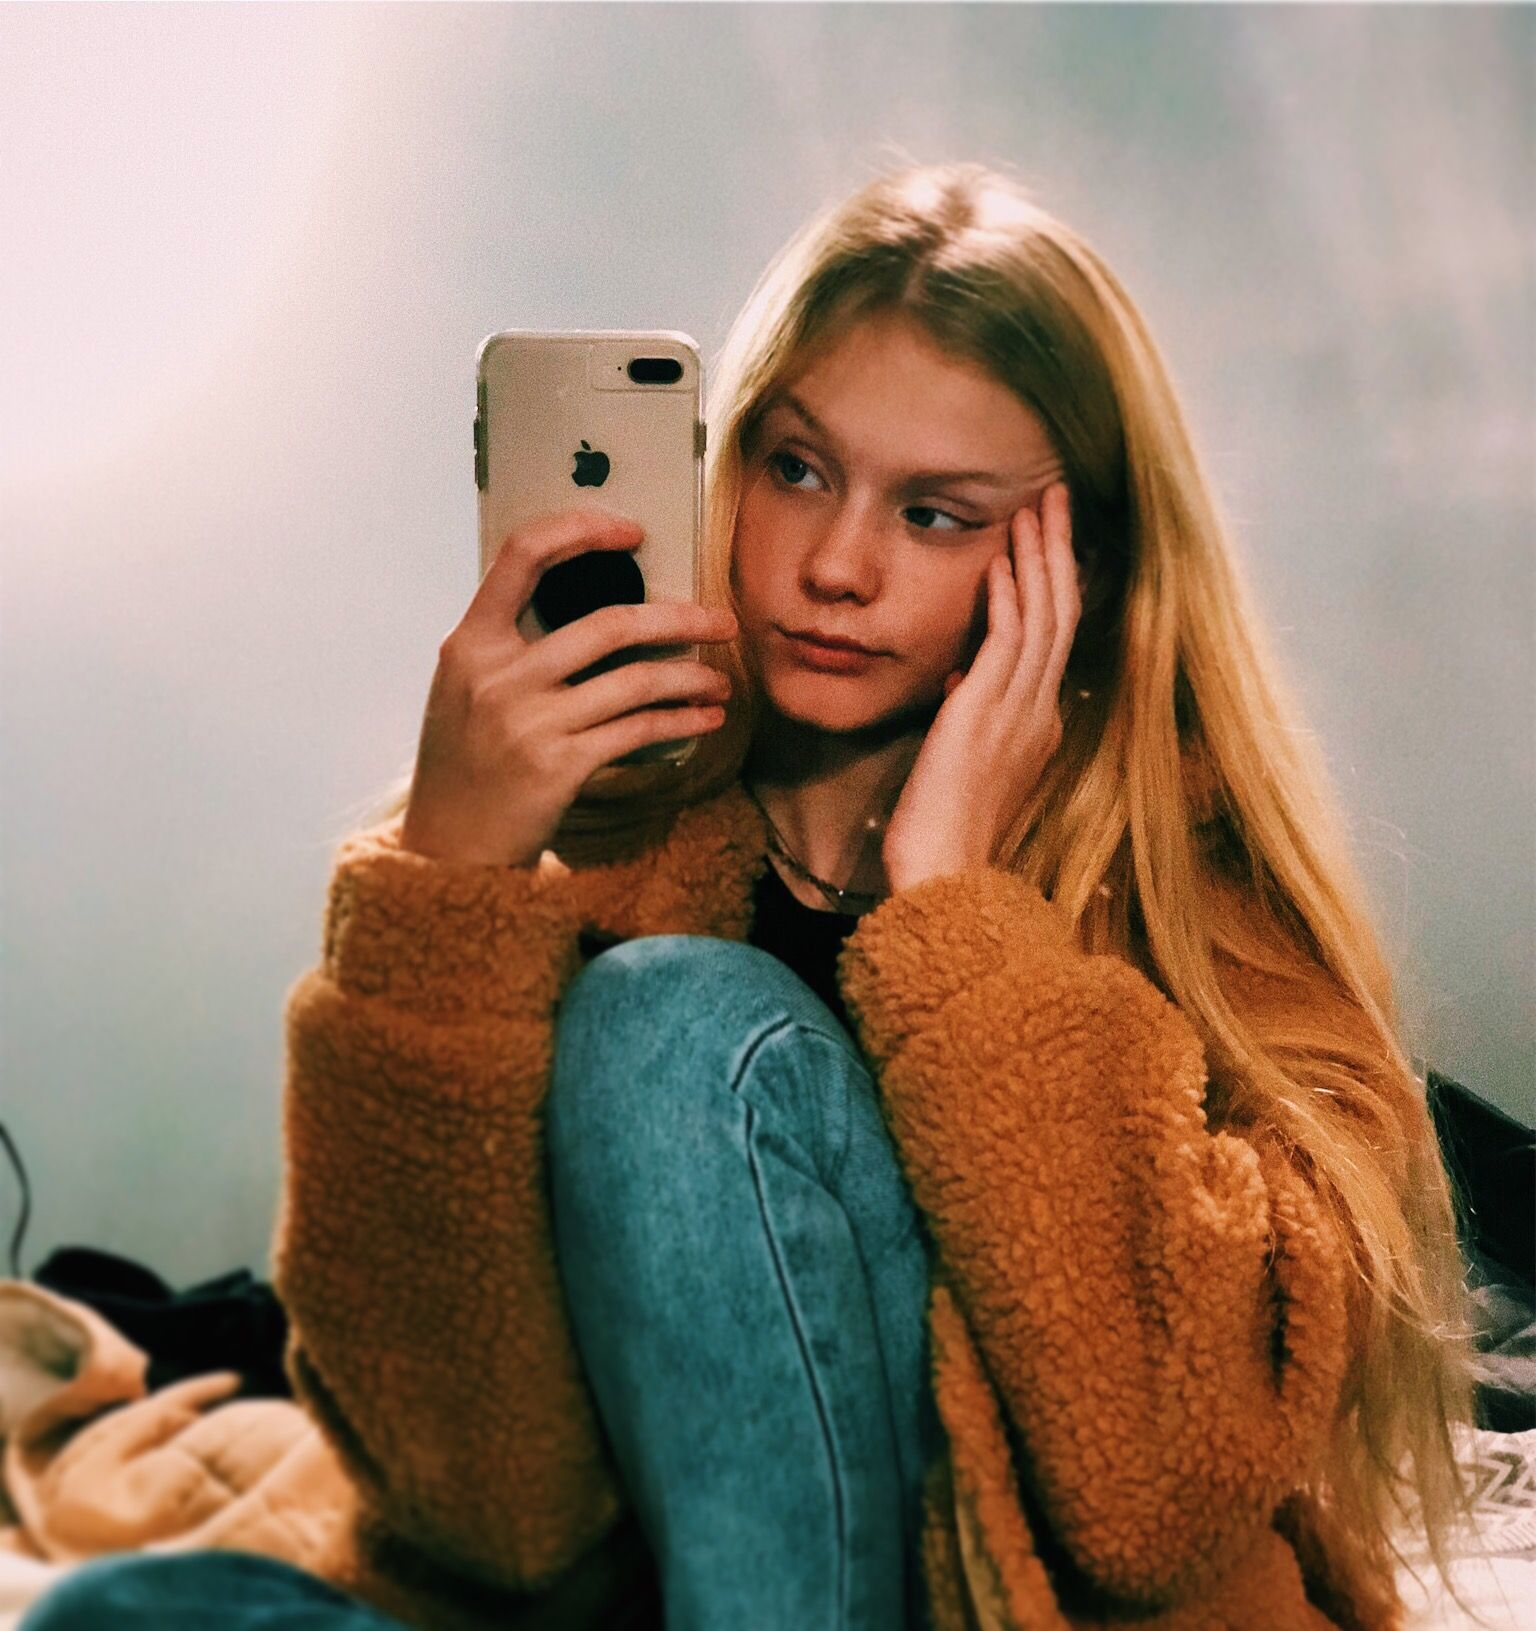 Selfie Photoshoot Model Fashion Outfit Girl Blondehair